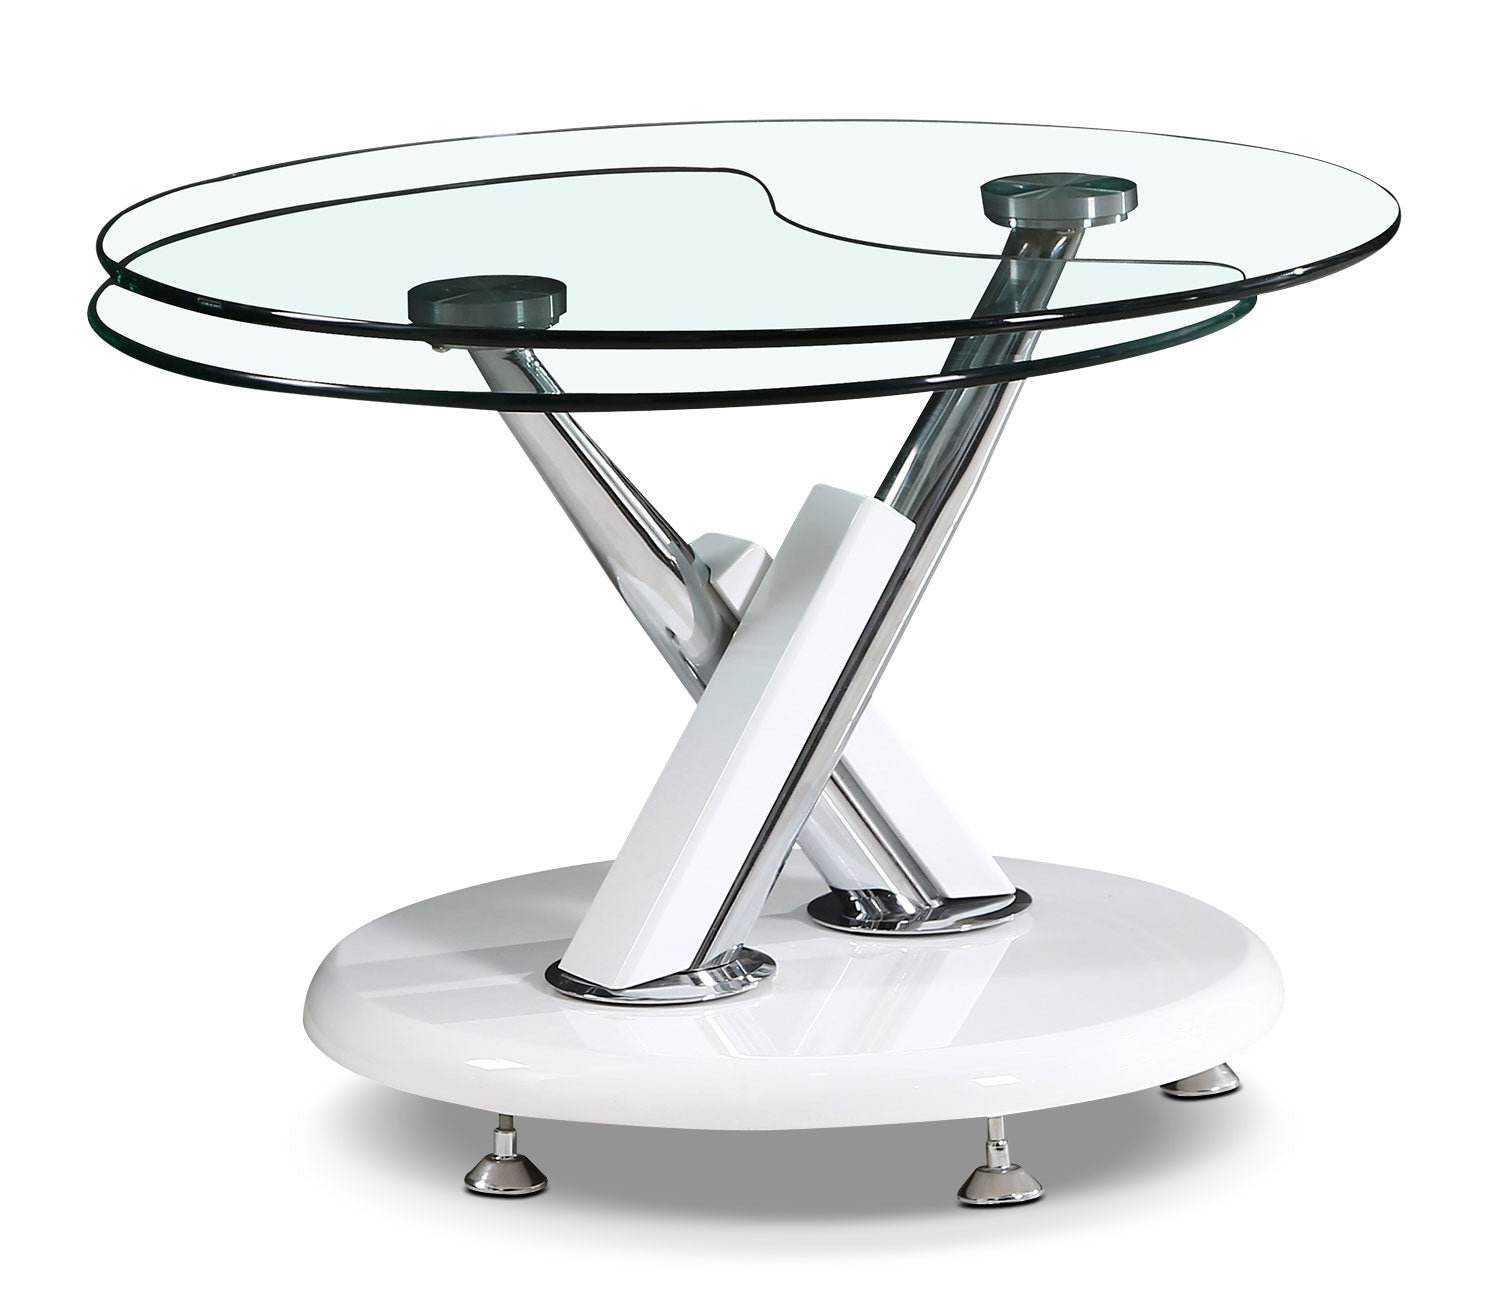 Embree Coffee Table With Extending Swivel TopTable à Café Embree